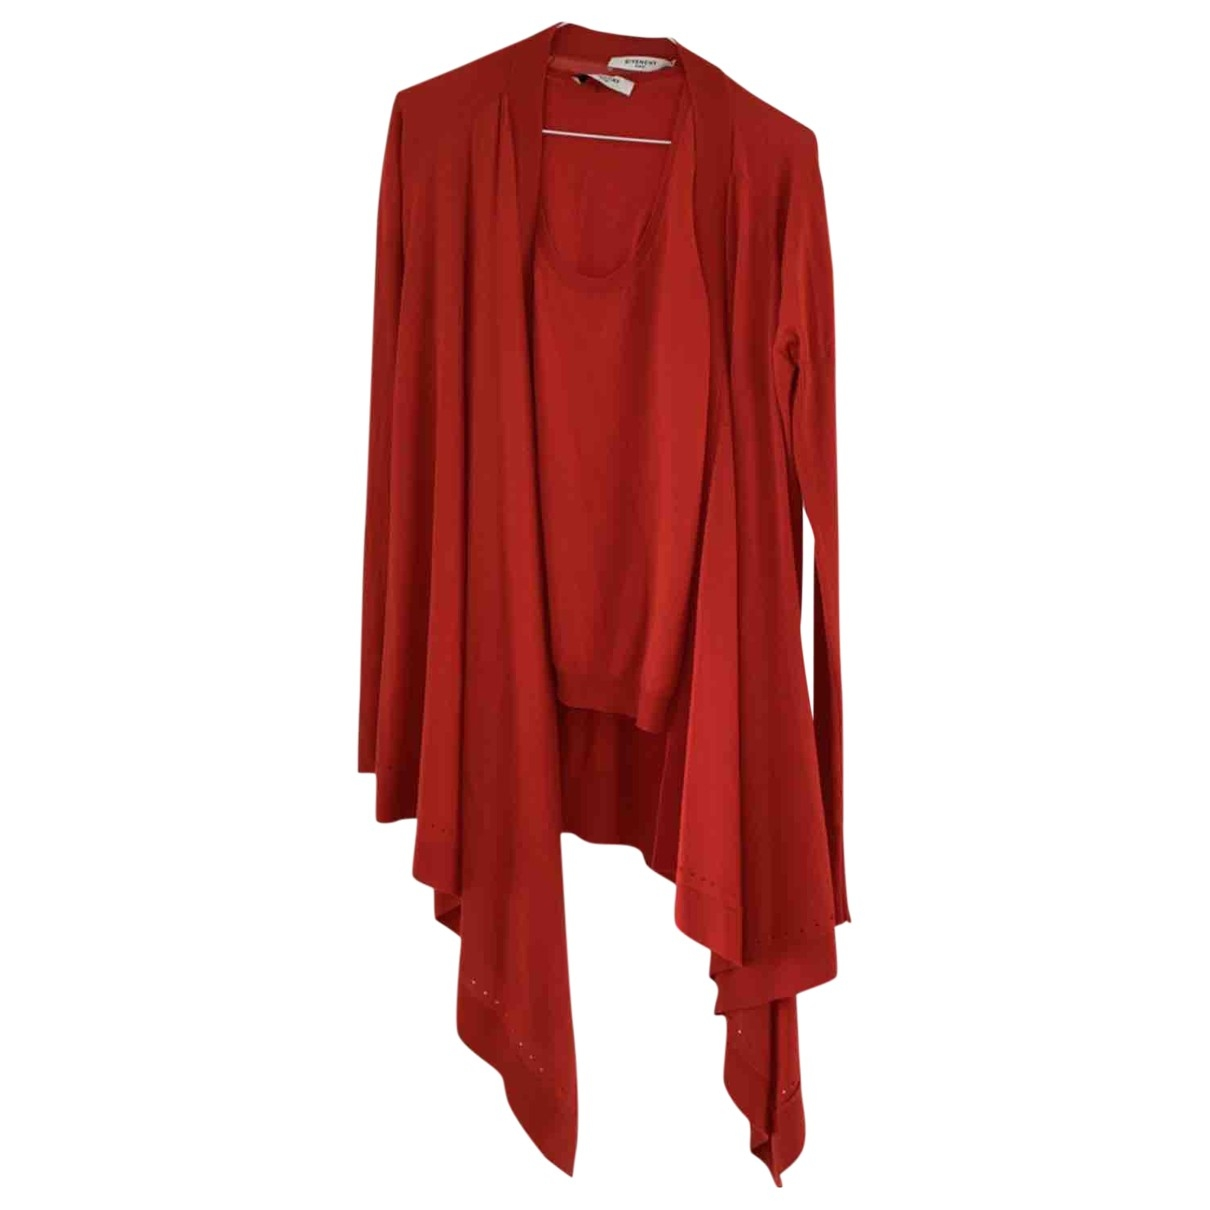 Givenchy \N Red Wool Knitwear for Women S International